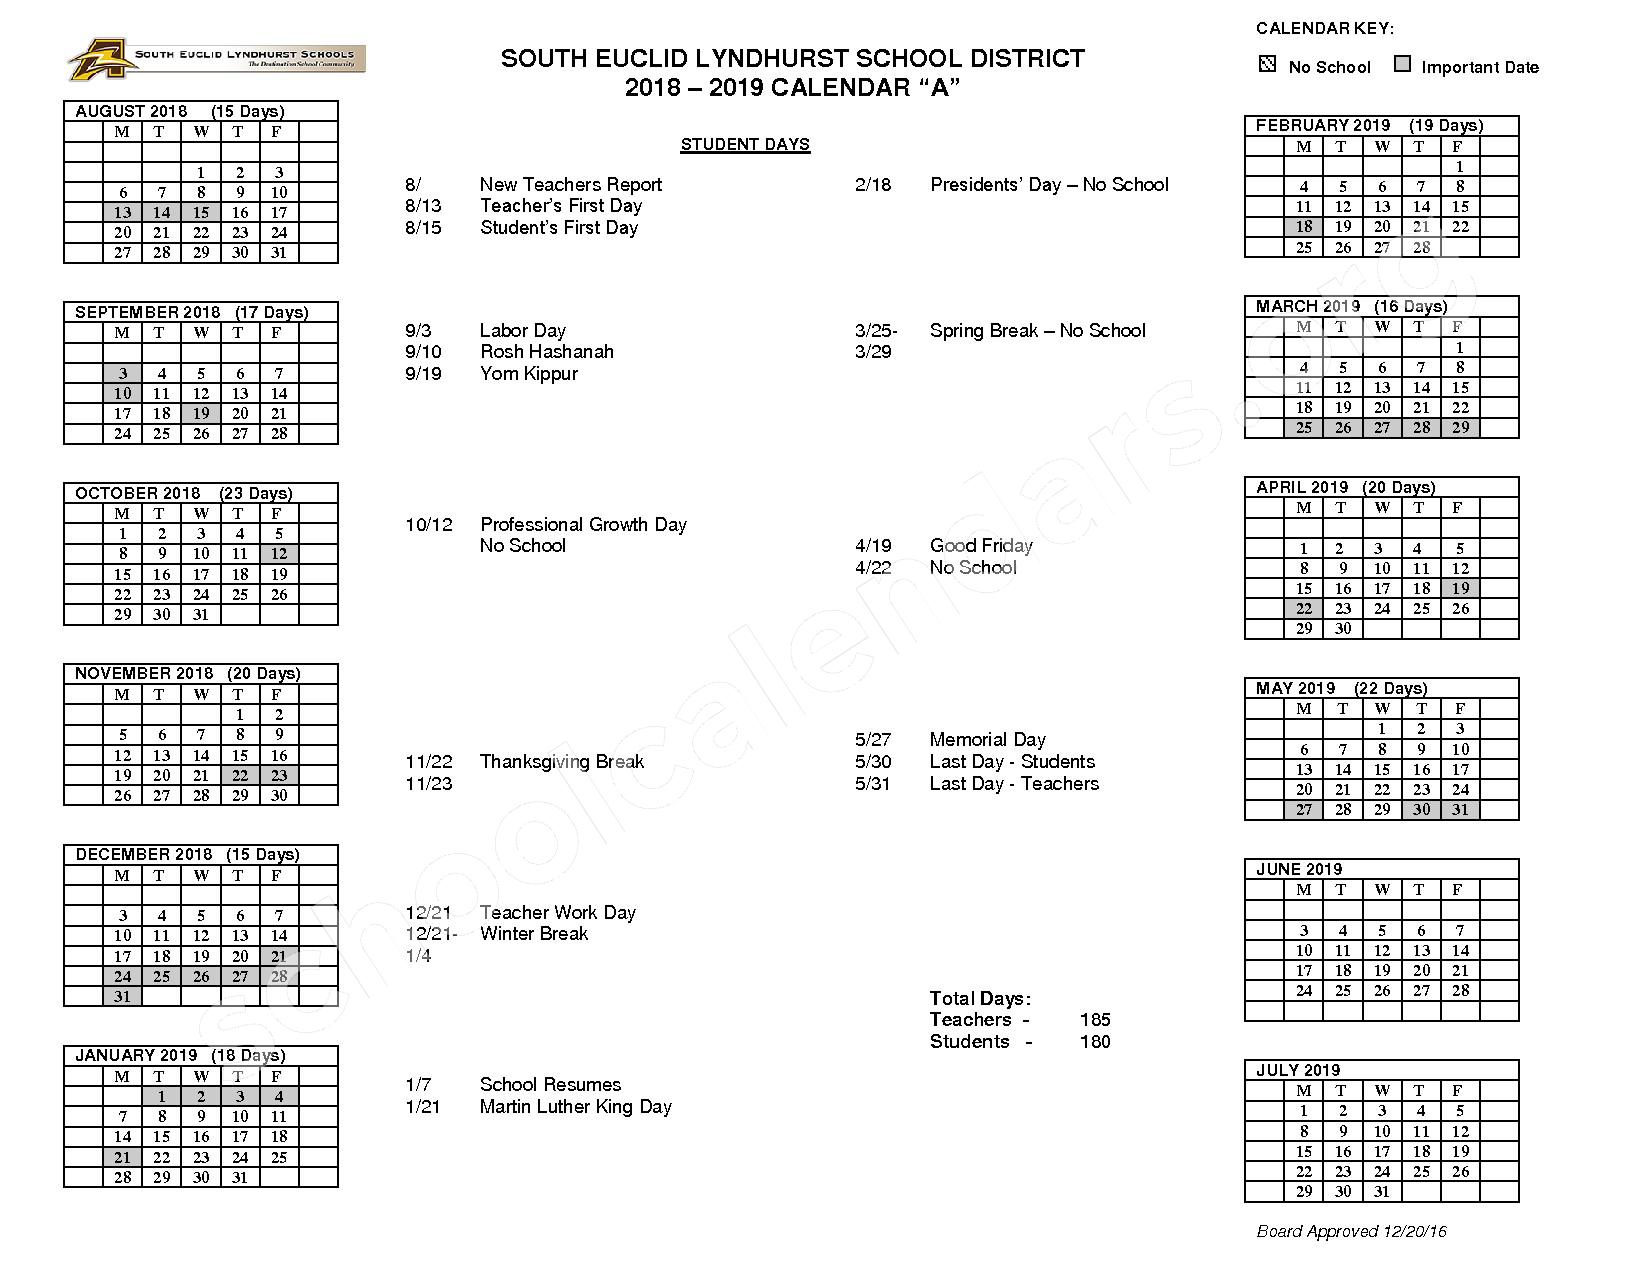 South Euclid-Lyndhurst Schools Calendars – Lyndhurst, Oh throughout South Euclid Lyndhurst Calendar